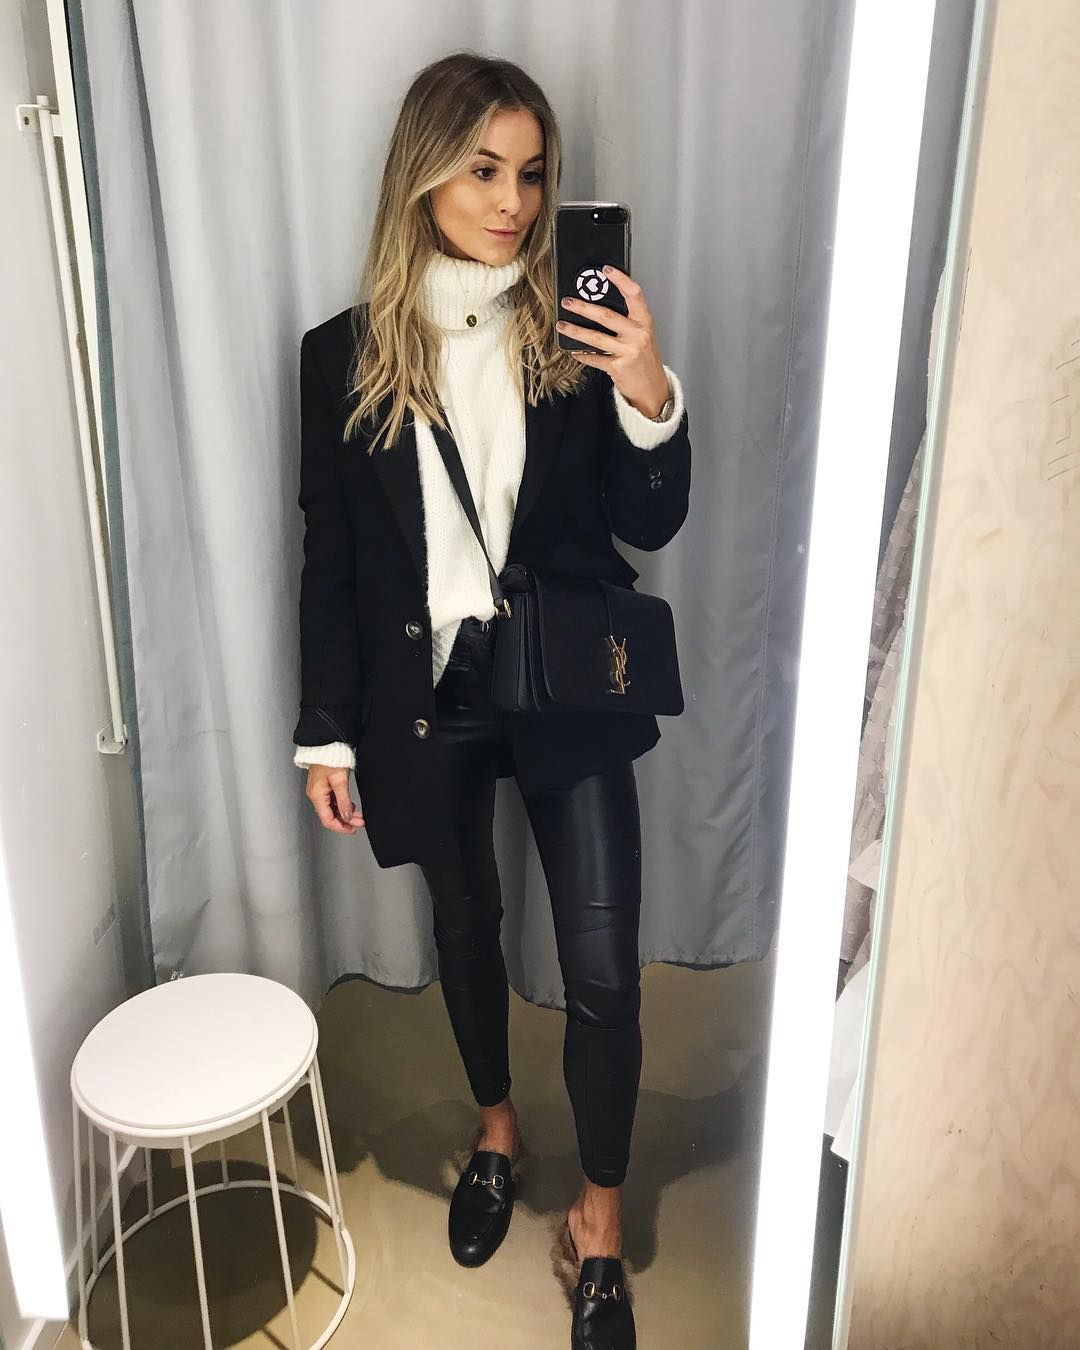 "NADIA ANYA ⚡️ on Instagram: ""Rainy days = changing room selfies"